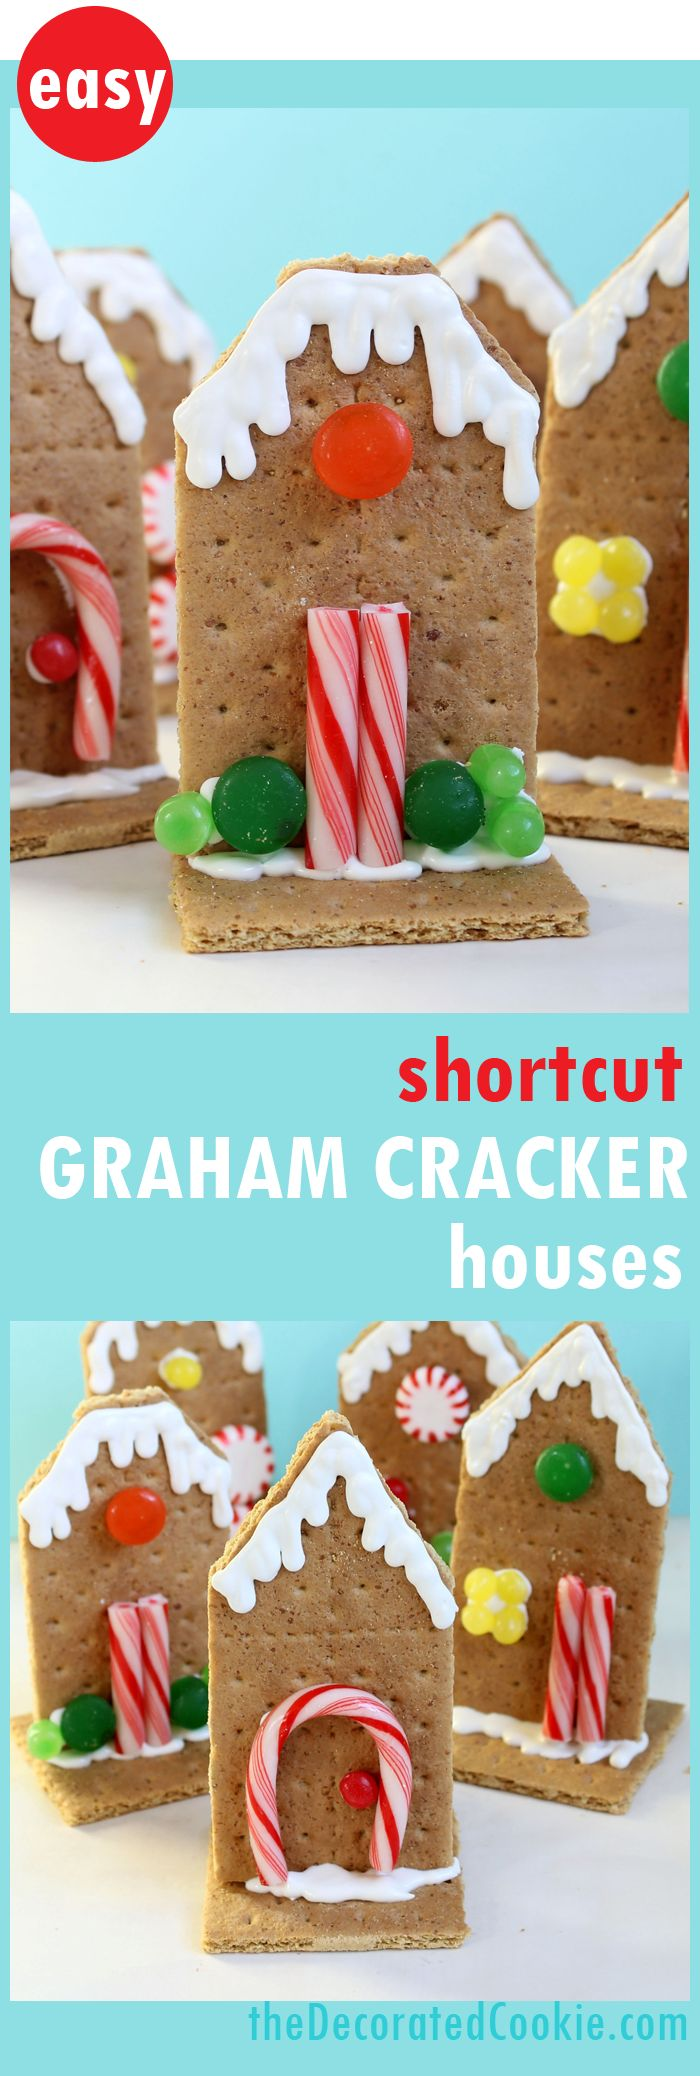 Sanity-saving, kid-friendly Christmas food craft! Make 2D graham cracker houses instead of more complicated gingerbread cookie houses. EASY, fun way to decorate treats.